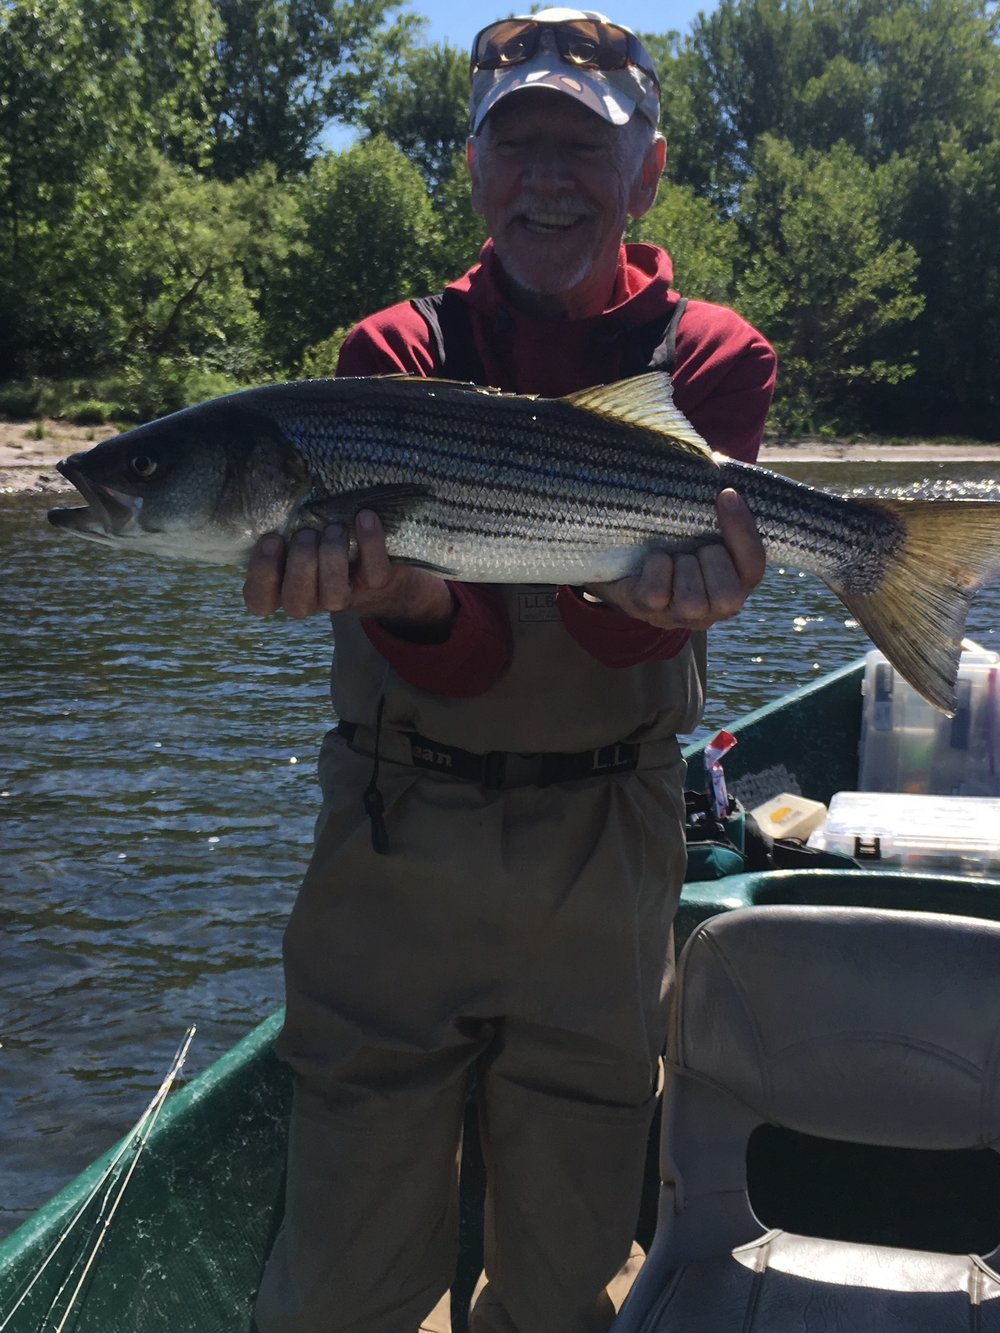 "Pete slams a 26"" Striper on 6lb test and barbless hooks, Nice work!"